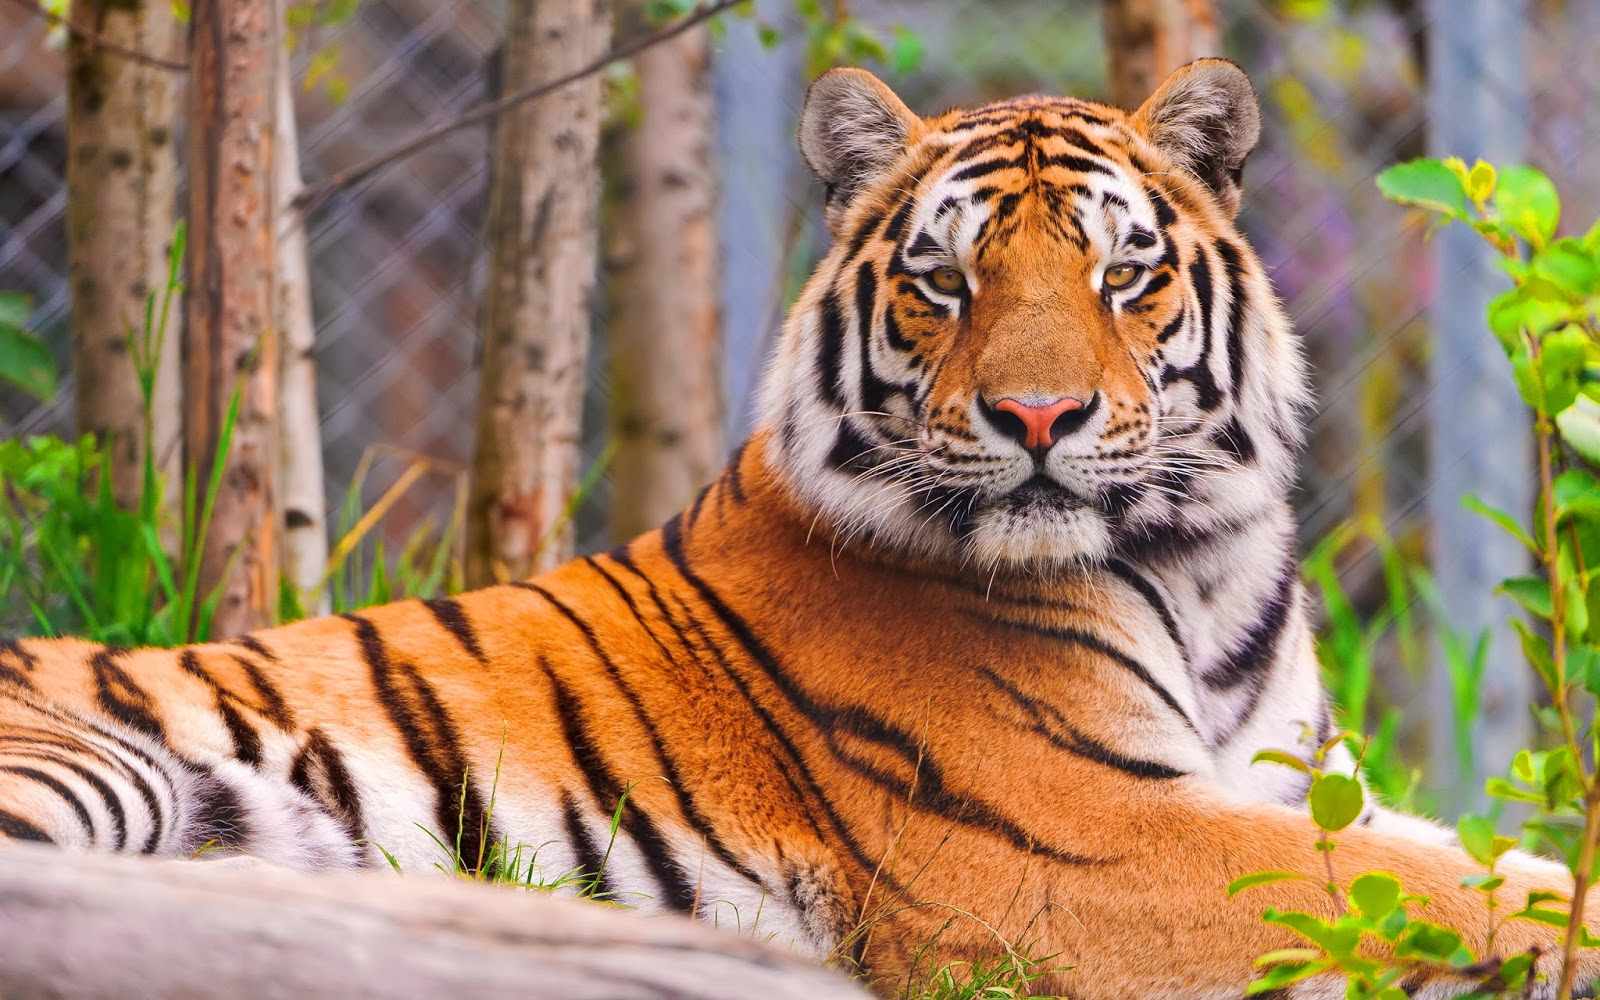 Tiger hd wallpapers beautiful desktop wallpapers 2014 - Tiger hd wallpaper for pc ...